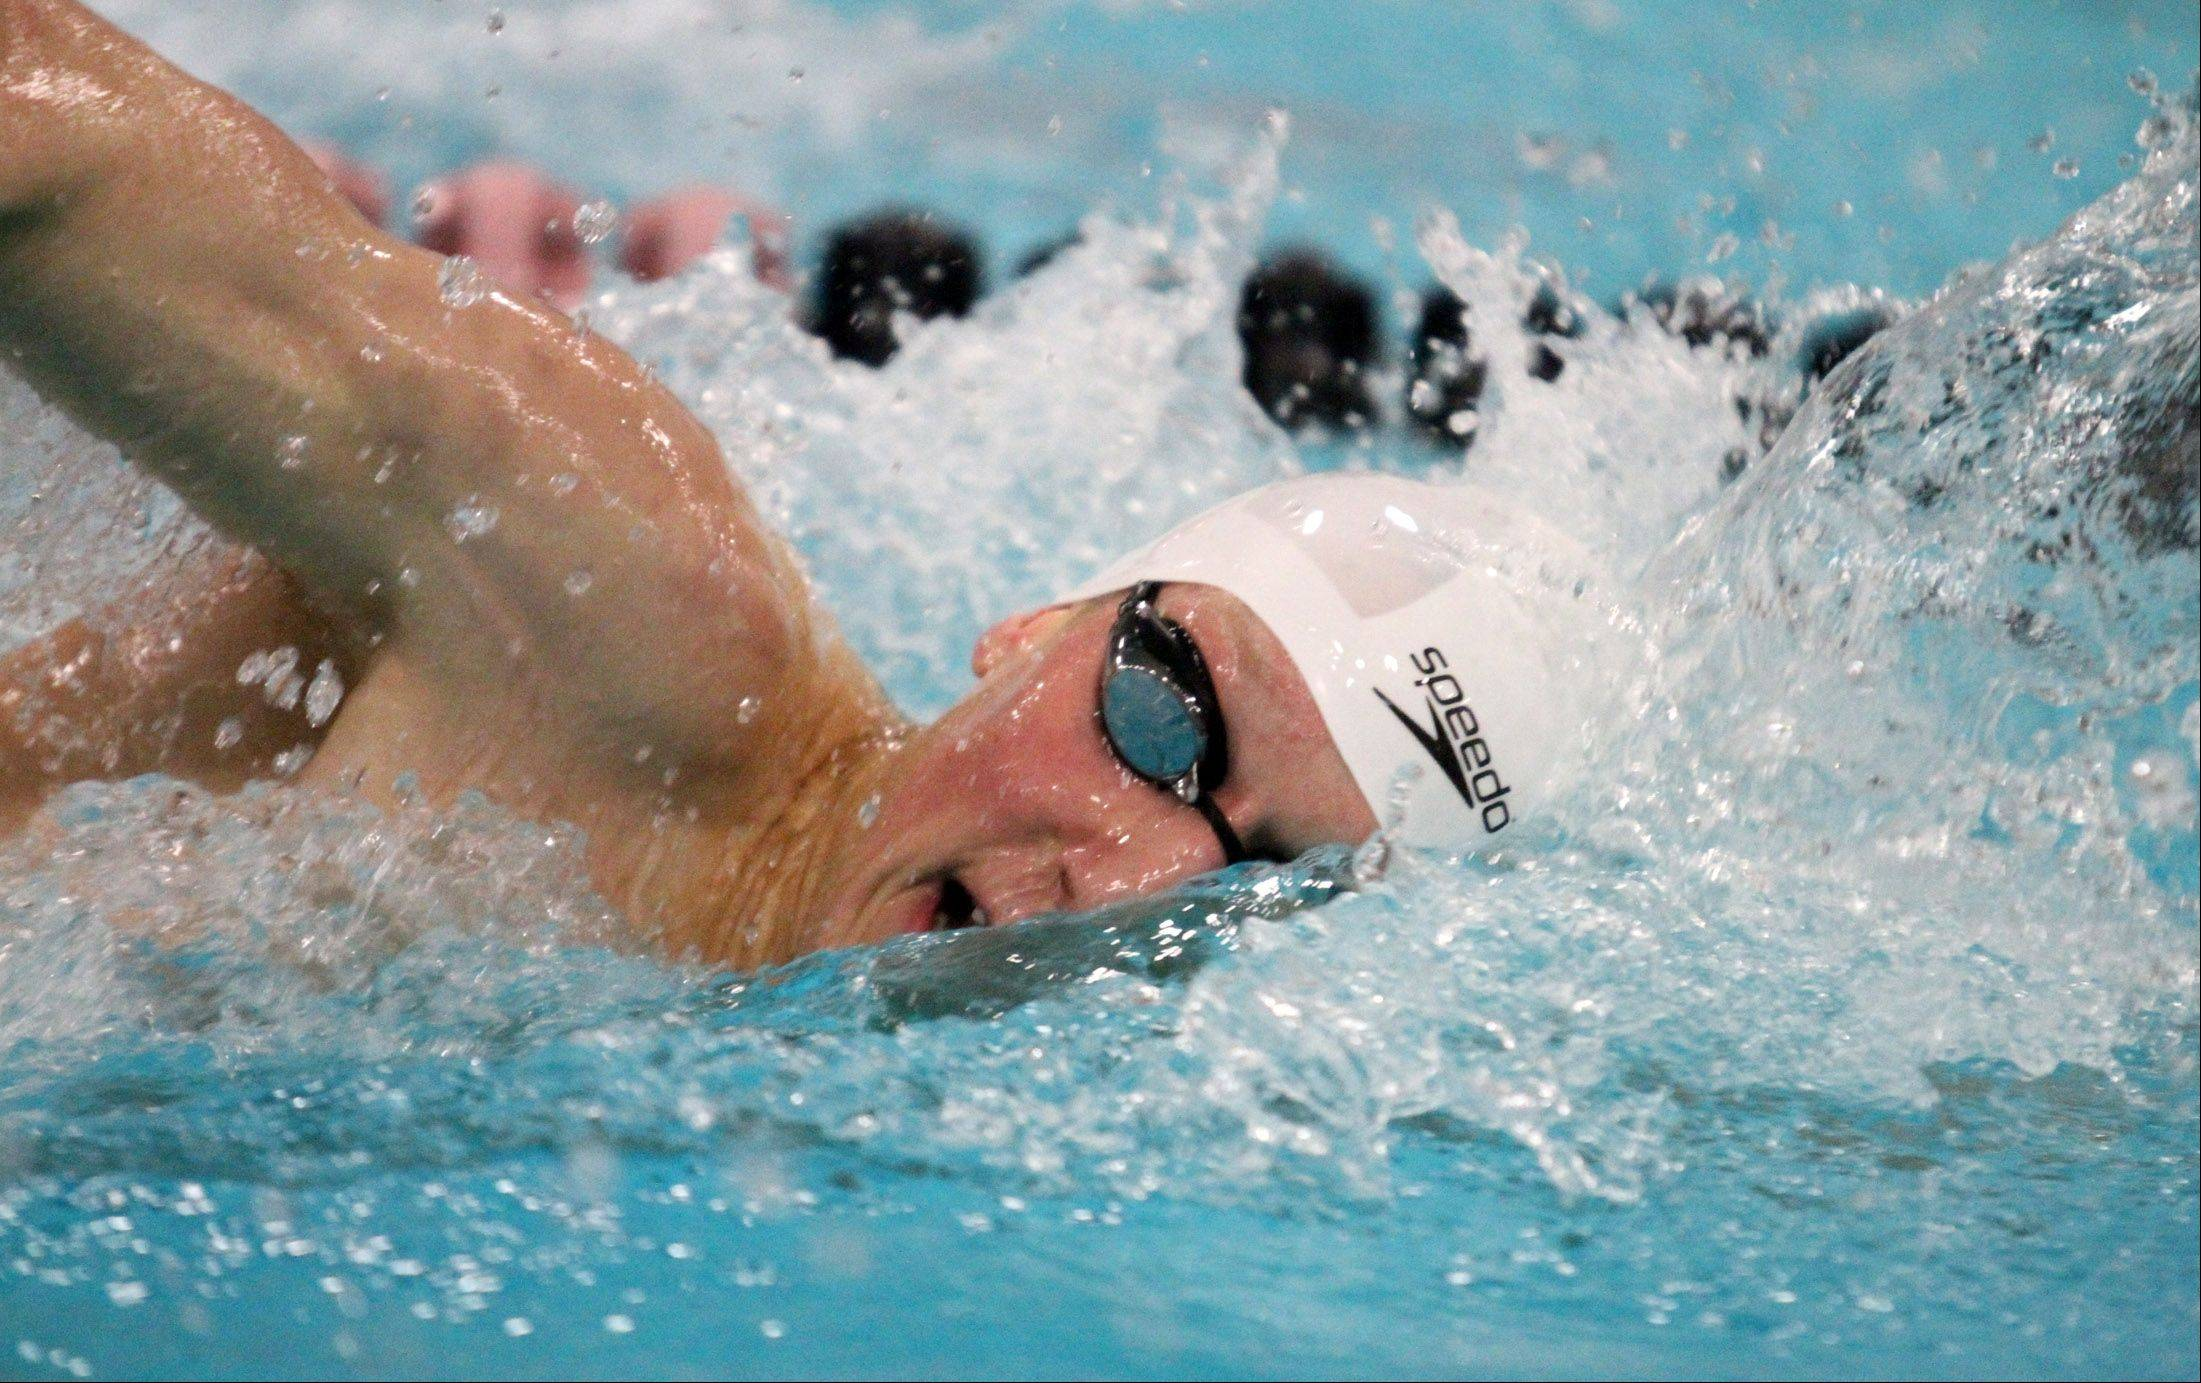 South Elgin's Nicholas Hasemann wins the 200-yard freestyle at the sectional swim meet at St. Charles East on Saturday.